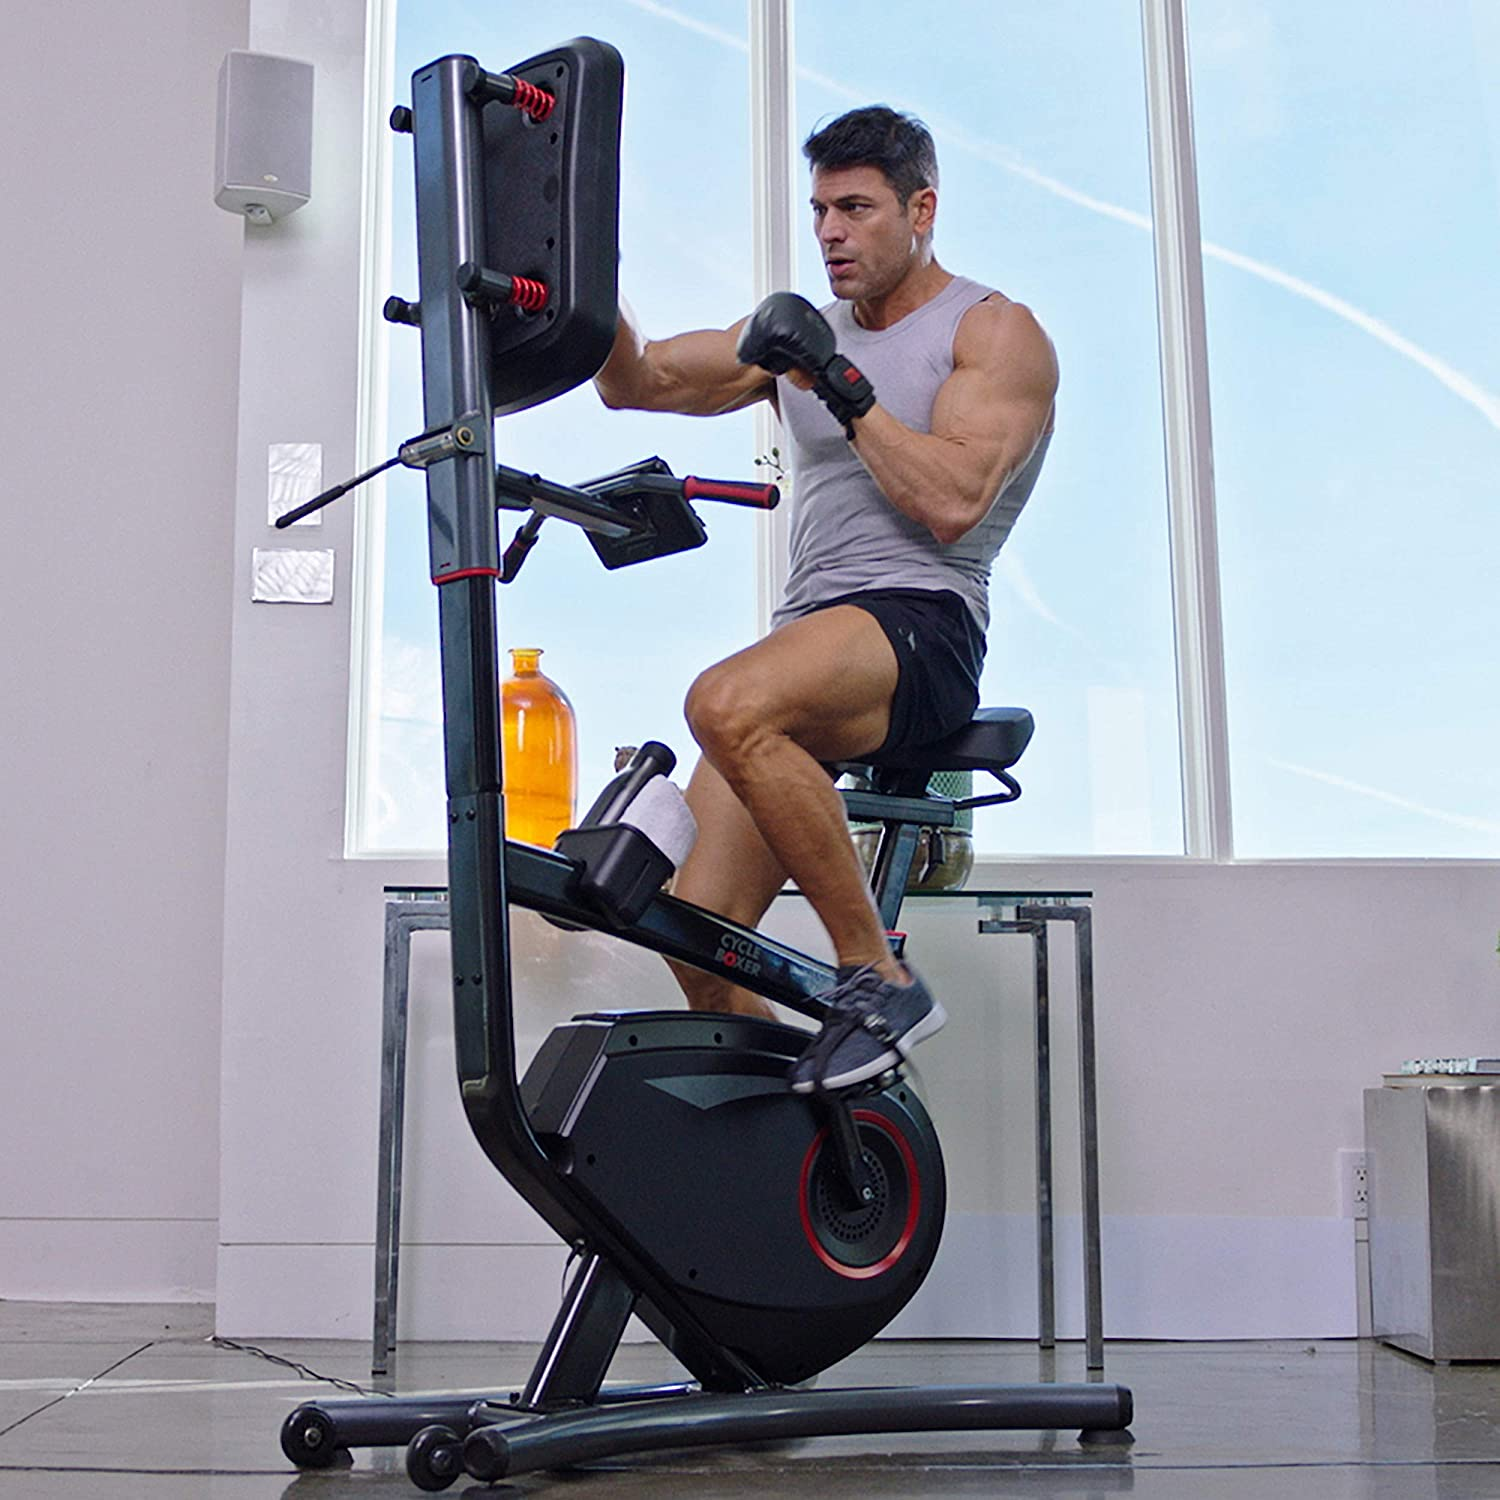 The Cycle Boxer Exercise Bike & Boxing Machine